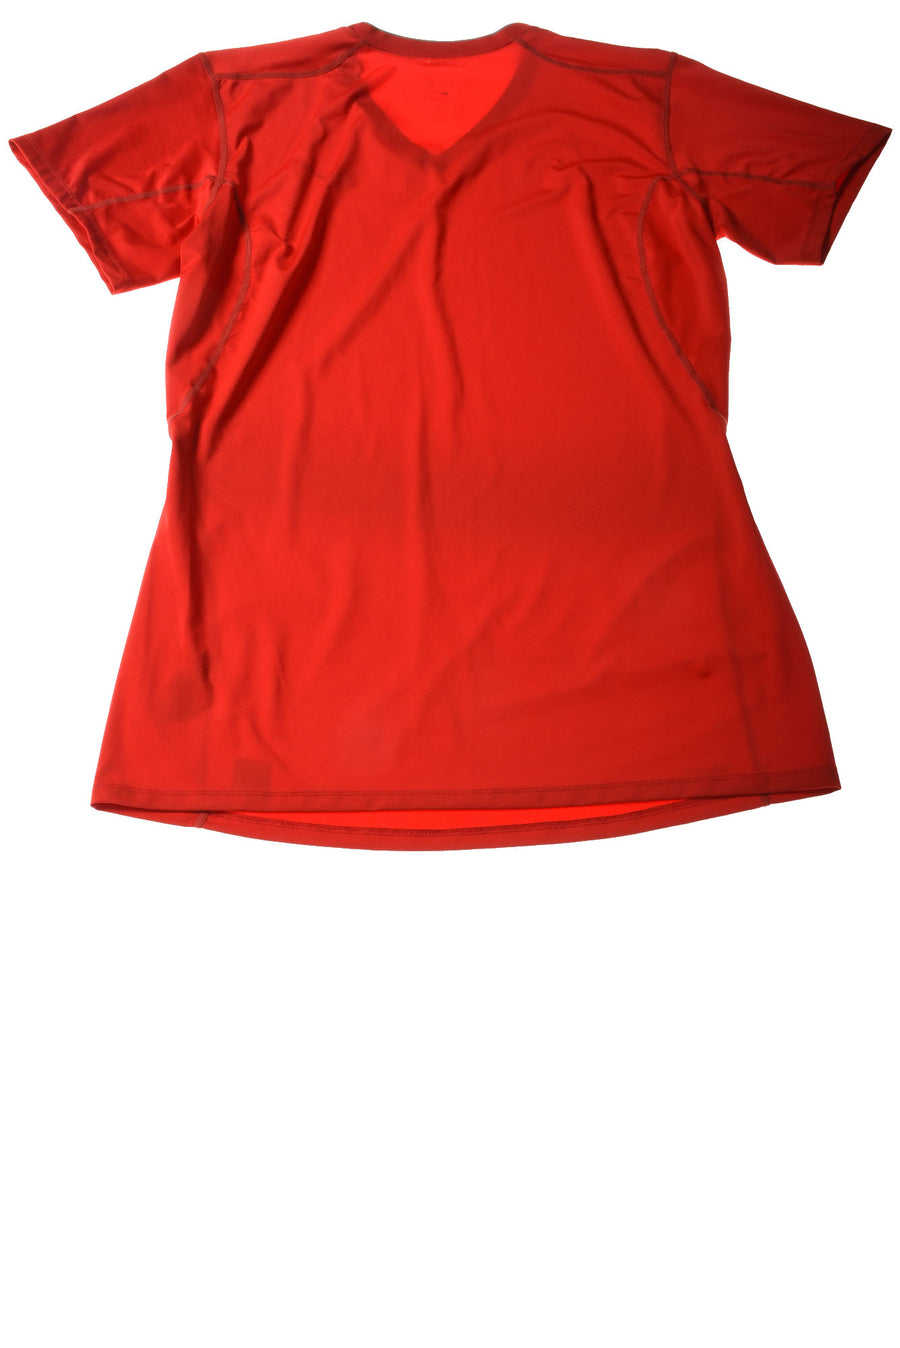 Women's Top By Nike